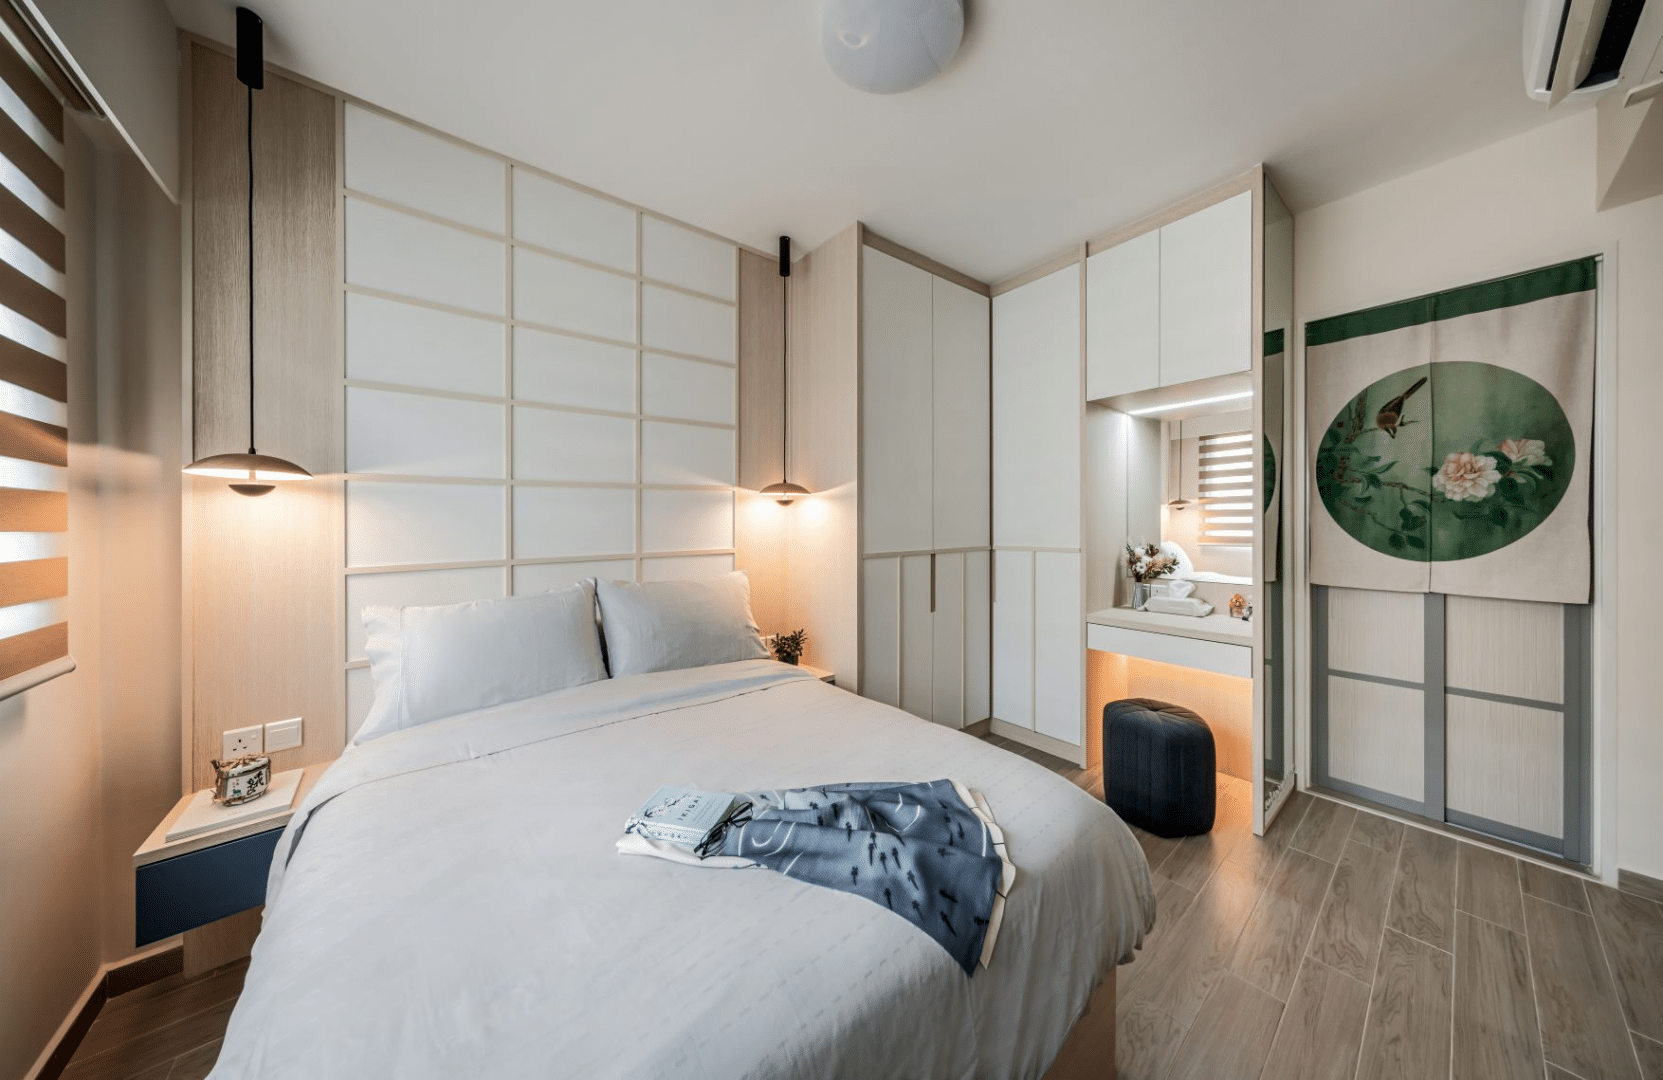 13 Practical Lessons for Small HDB Bedrooms Design [Tips by Weiken]